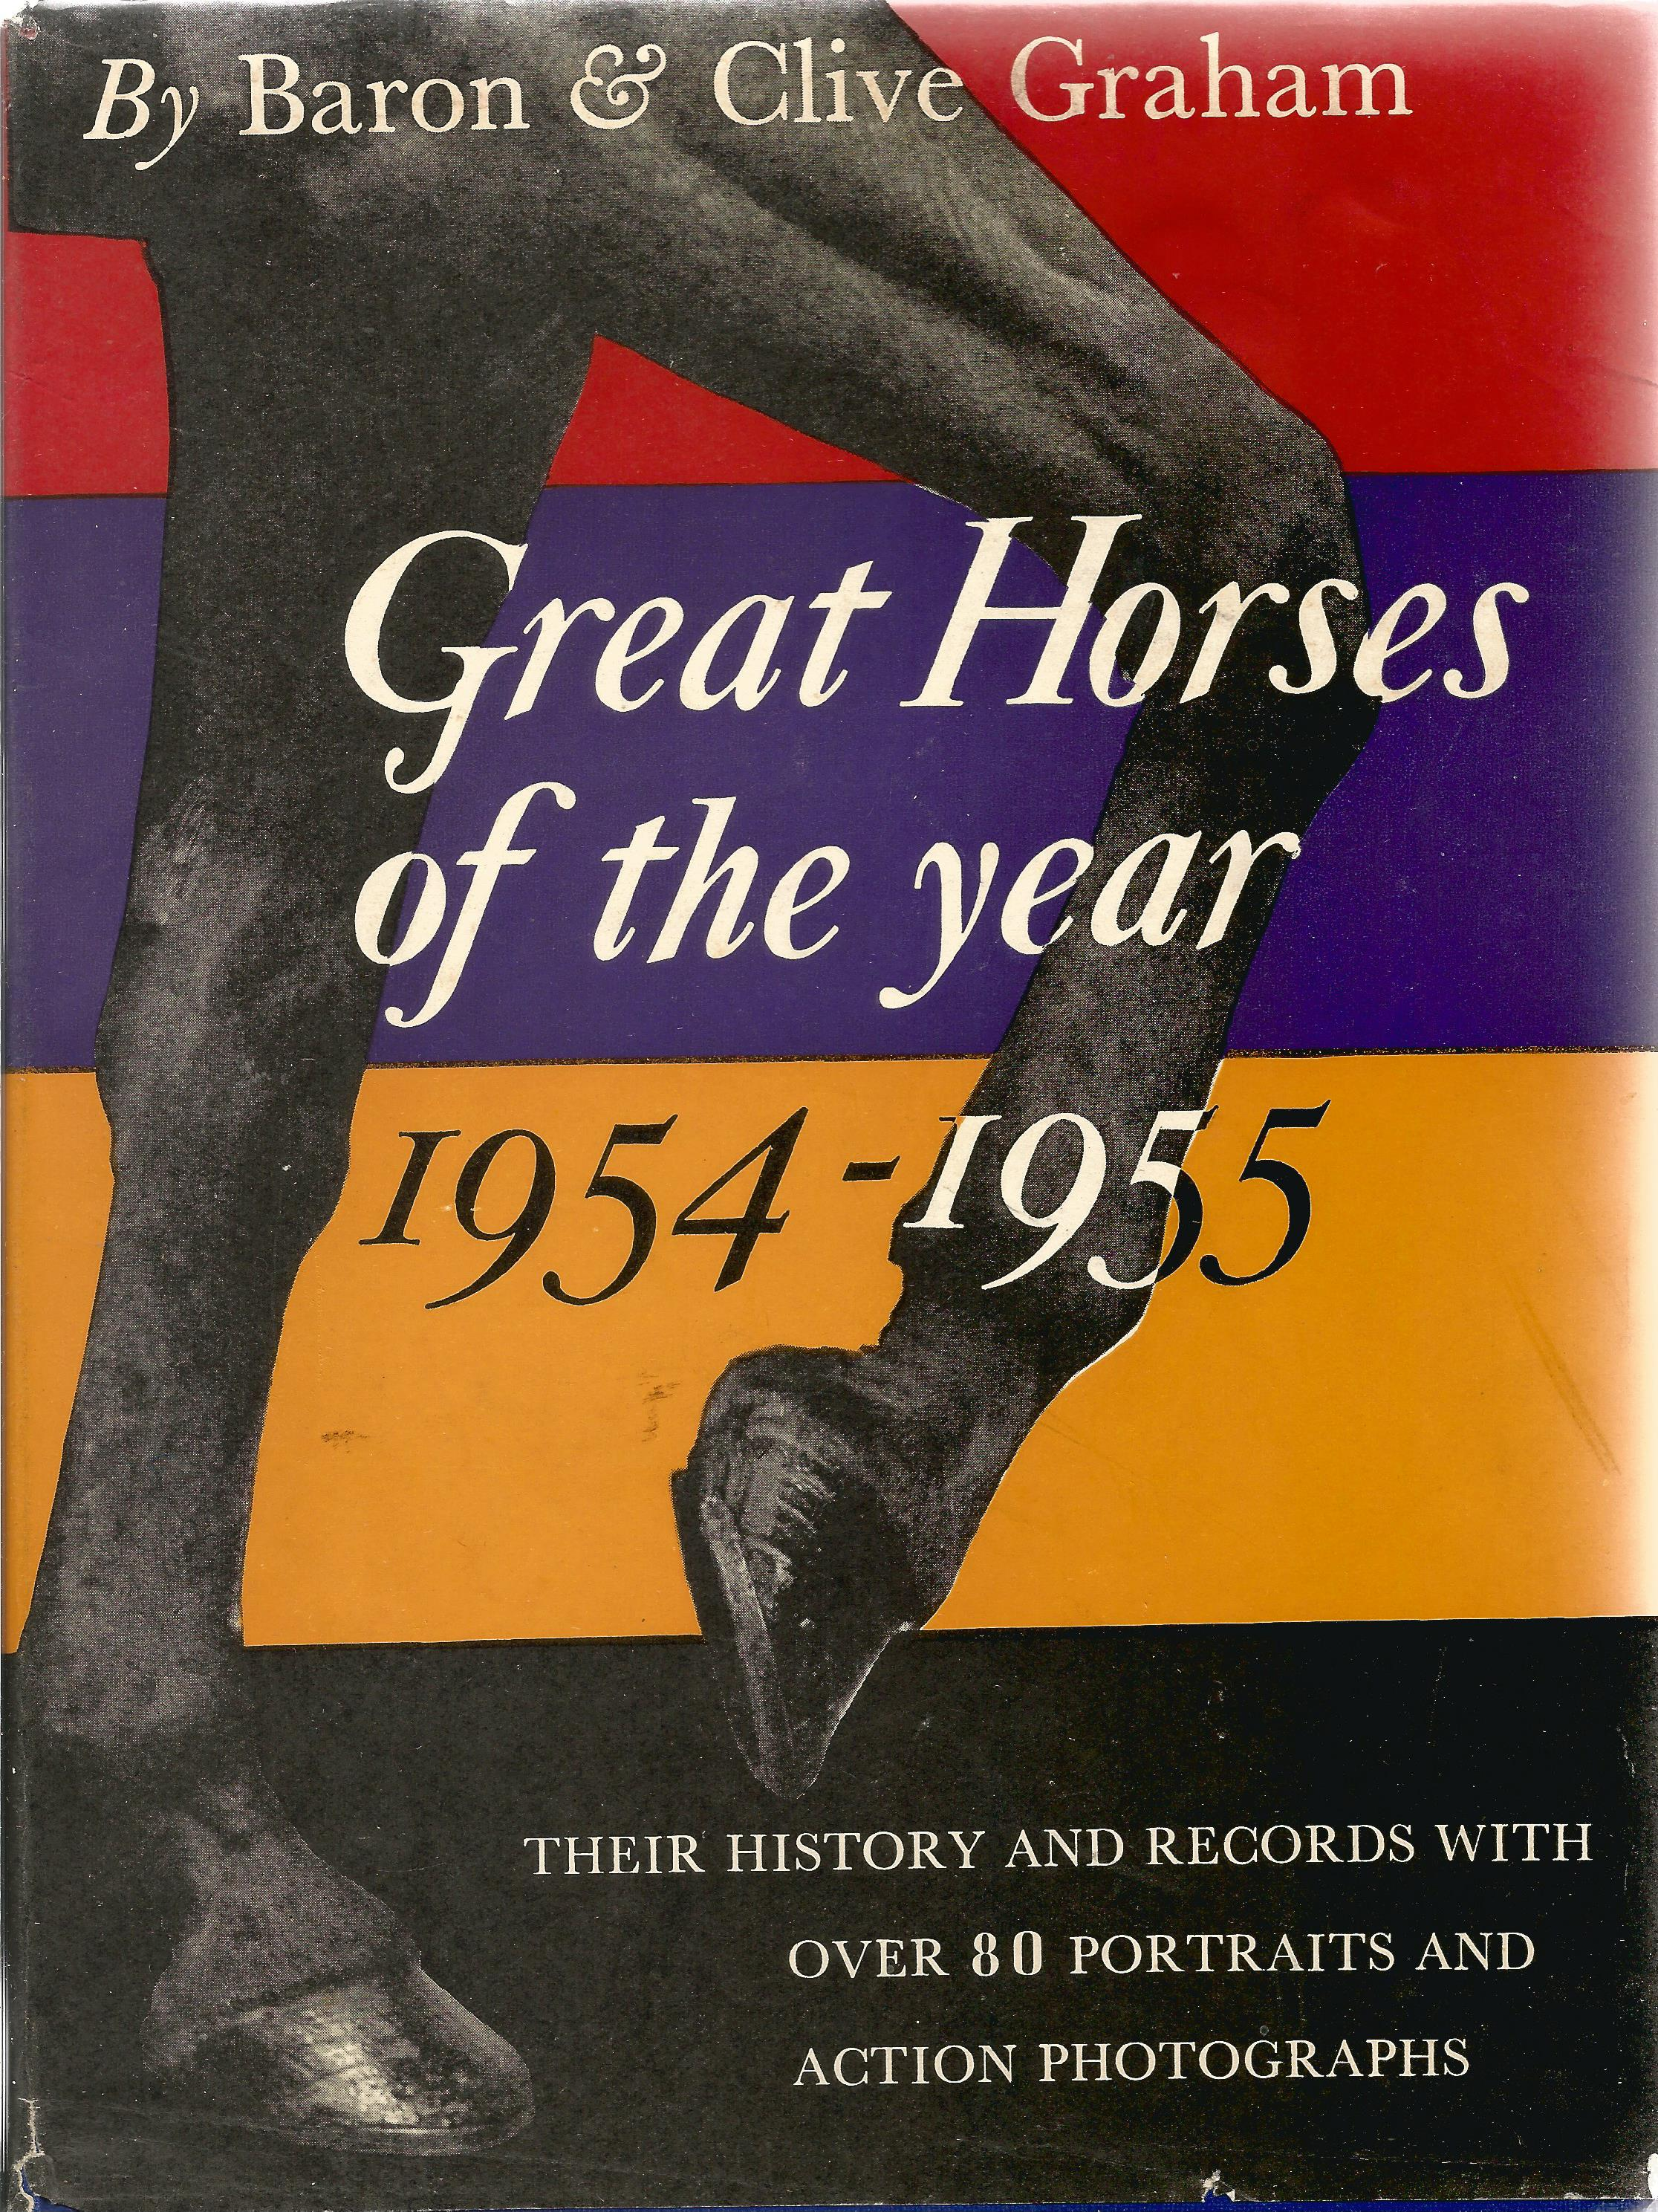 Baron & Clive Graham hardback book Great Horses of the Year 1954 1955 published by Macgibbon & Kee